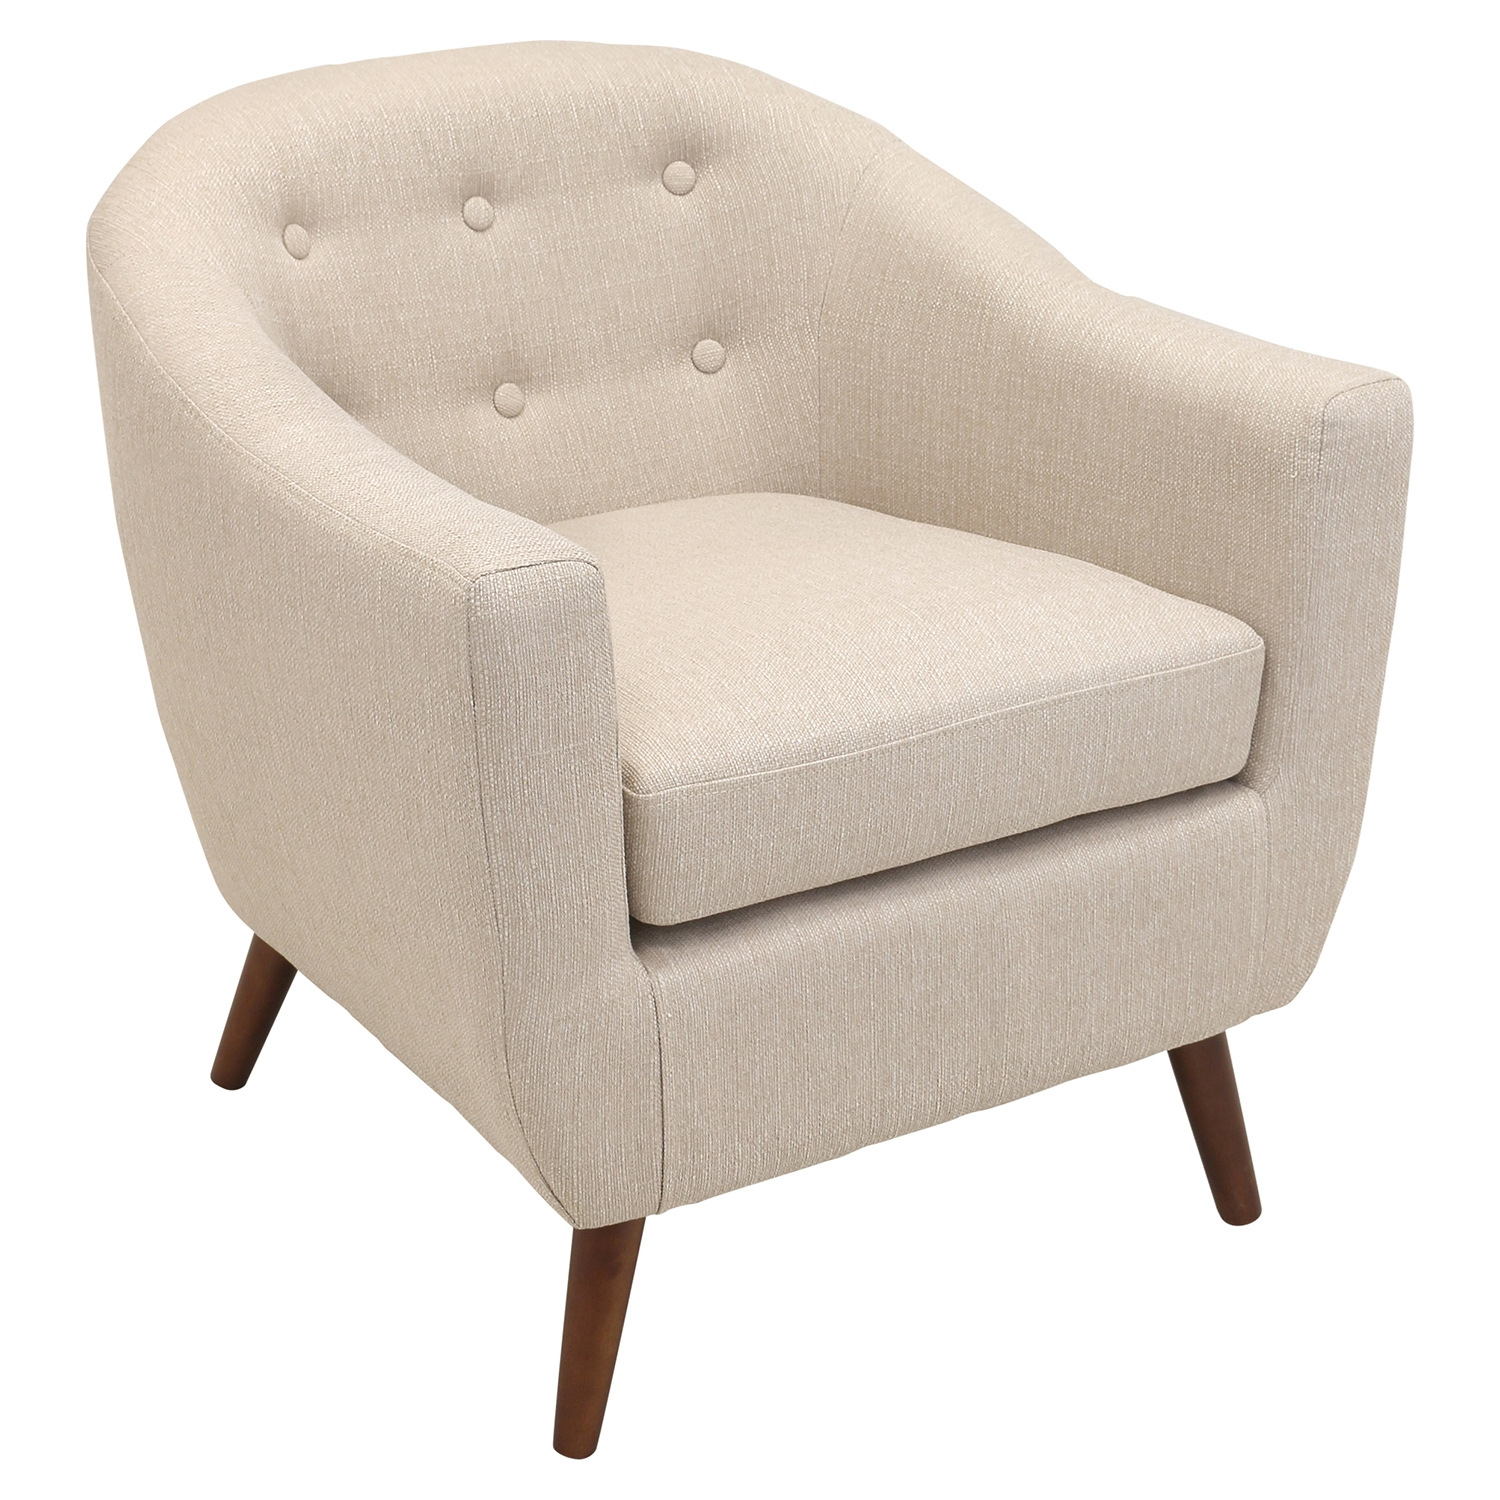 Rockwell Upholstery Armchair - Button Tufted, Cream